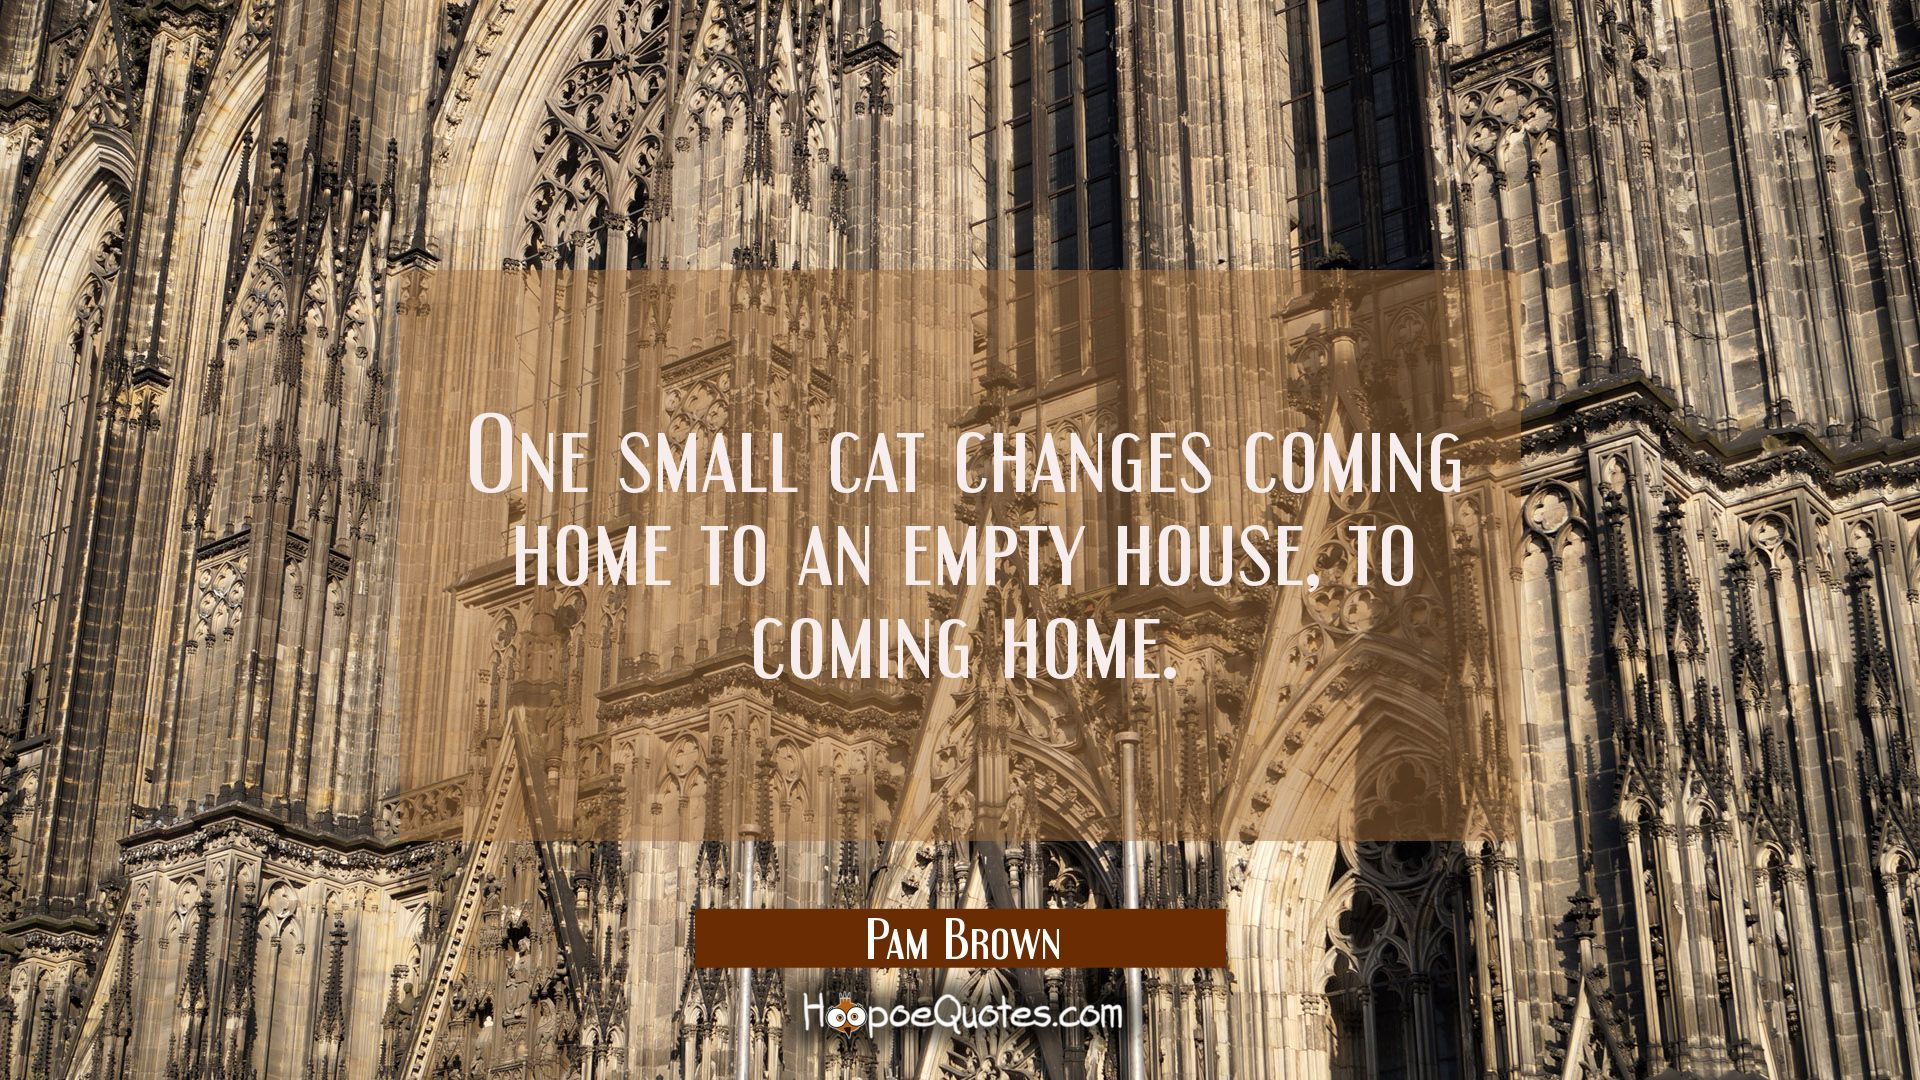 Coming Home Quotes One Small Cat Changes Coming Home To An Empty House To Coming Home